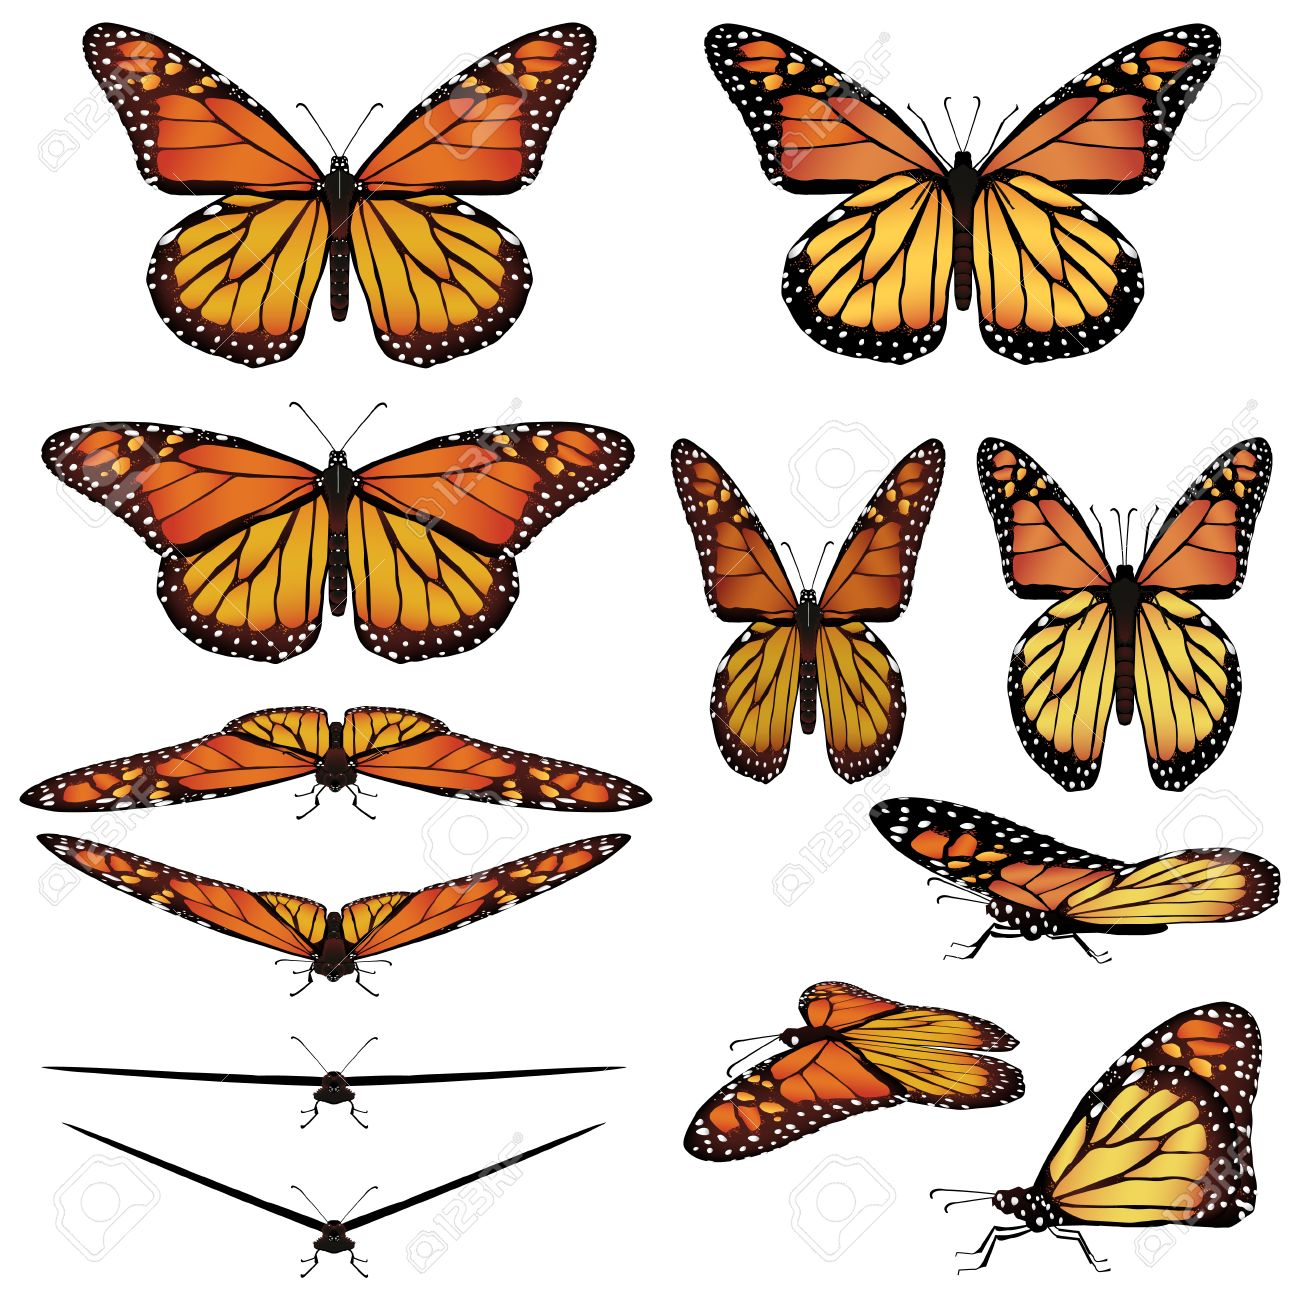 monarch butterfly in different poses royalty free cliparts